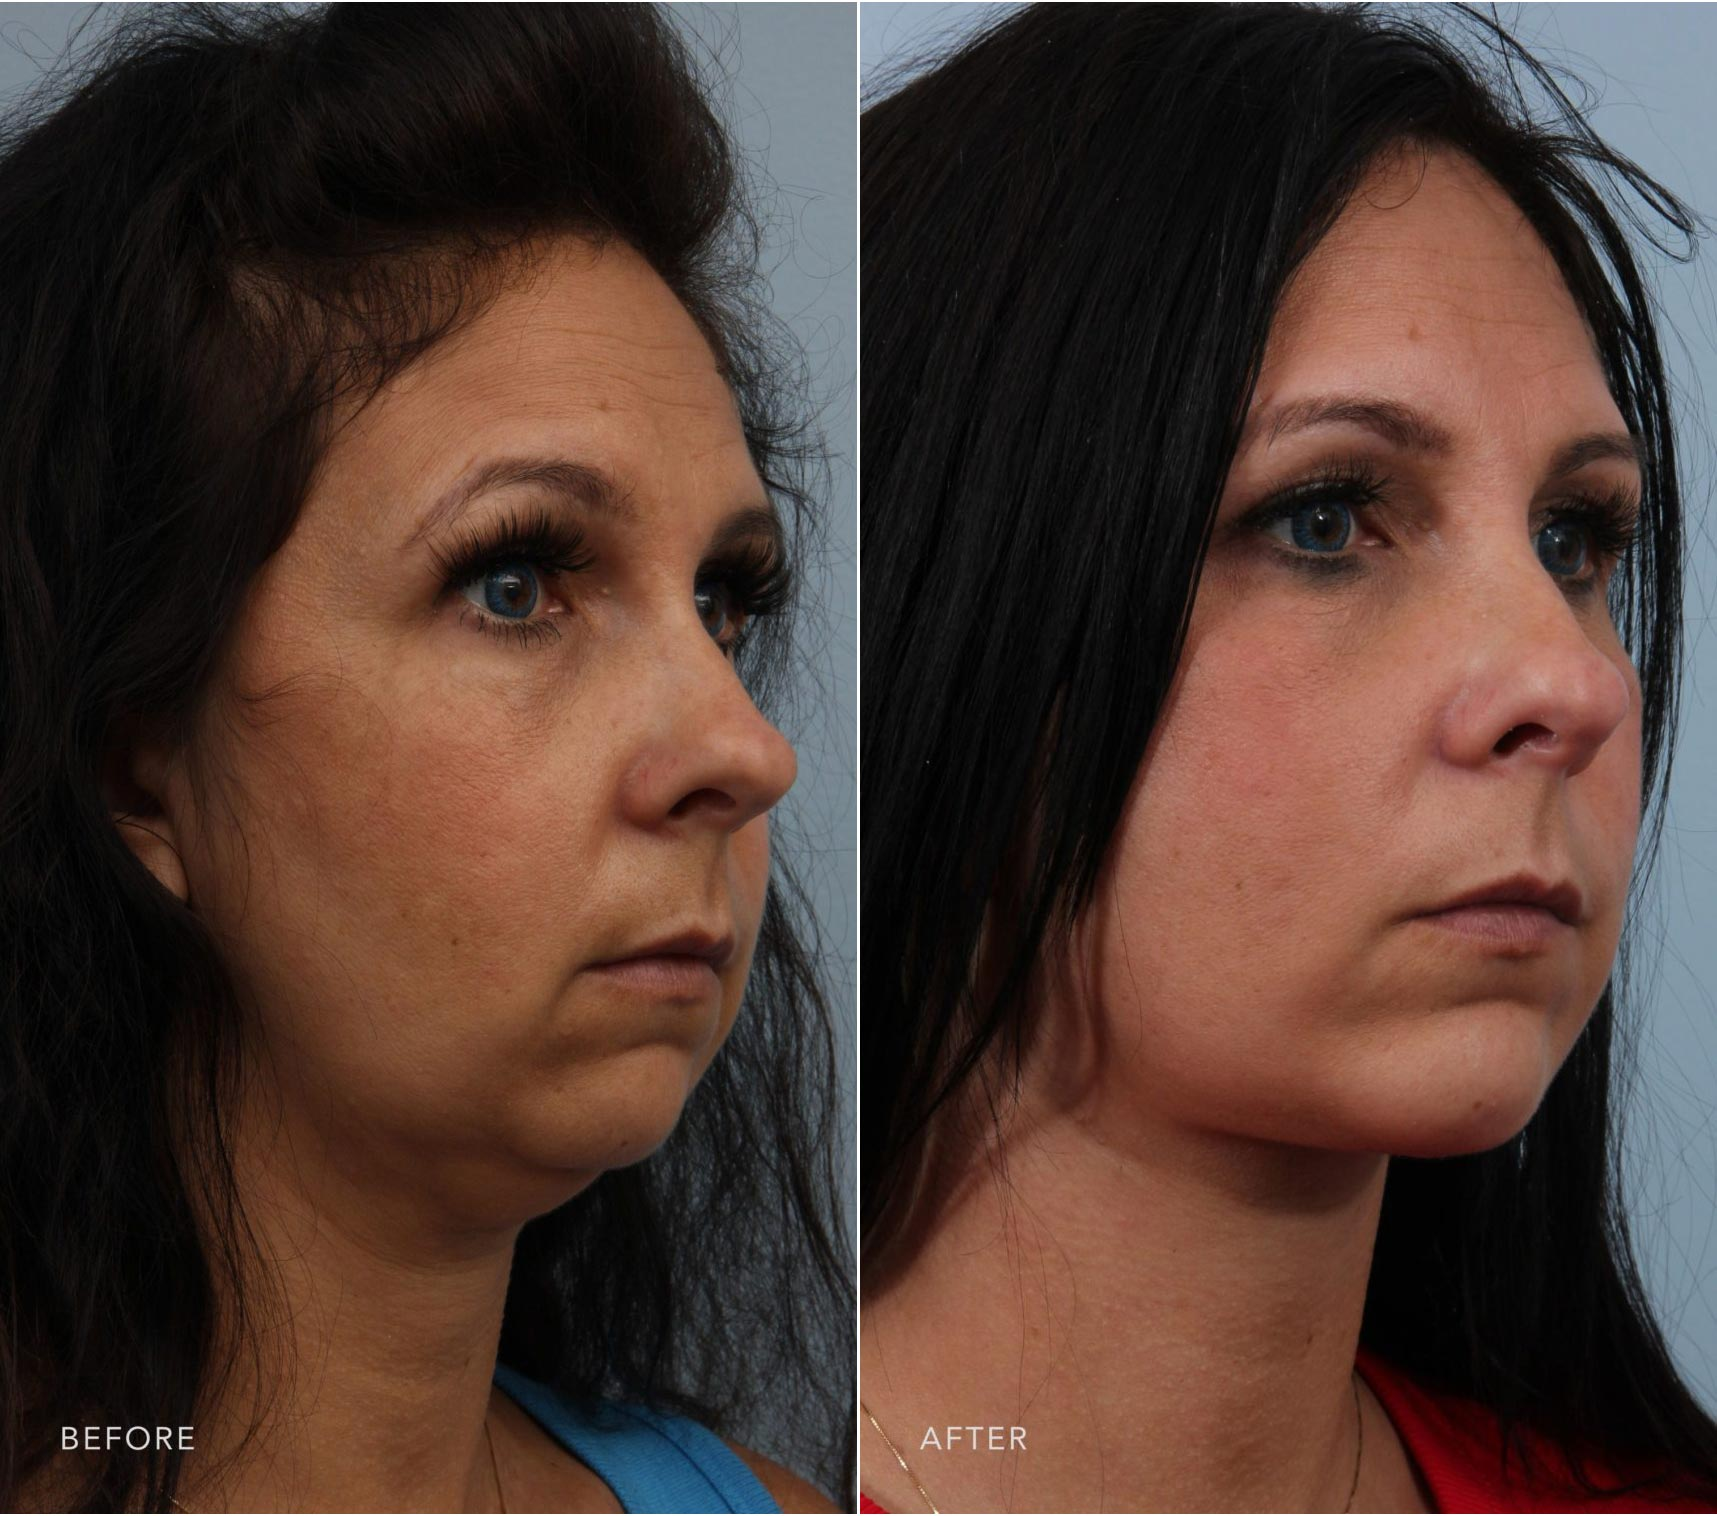 Closeup of a female patient before and after a deep plane facelift, chin augmentation, and facial liposuction